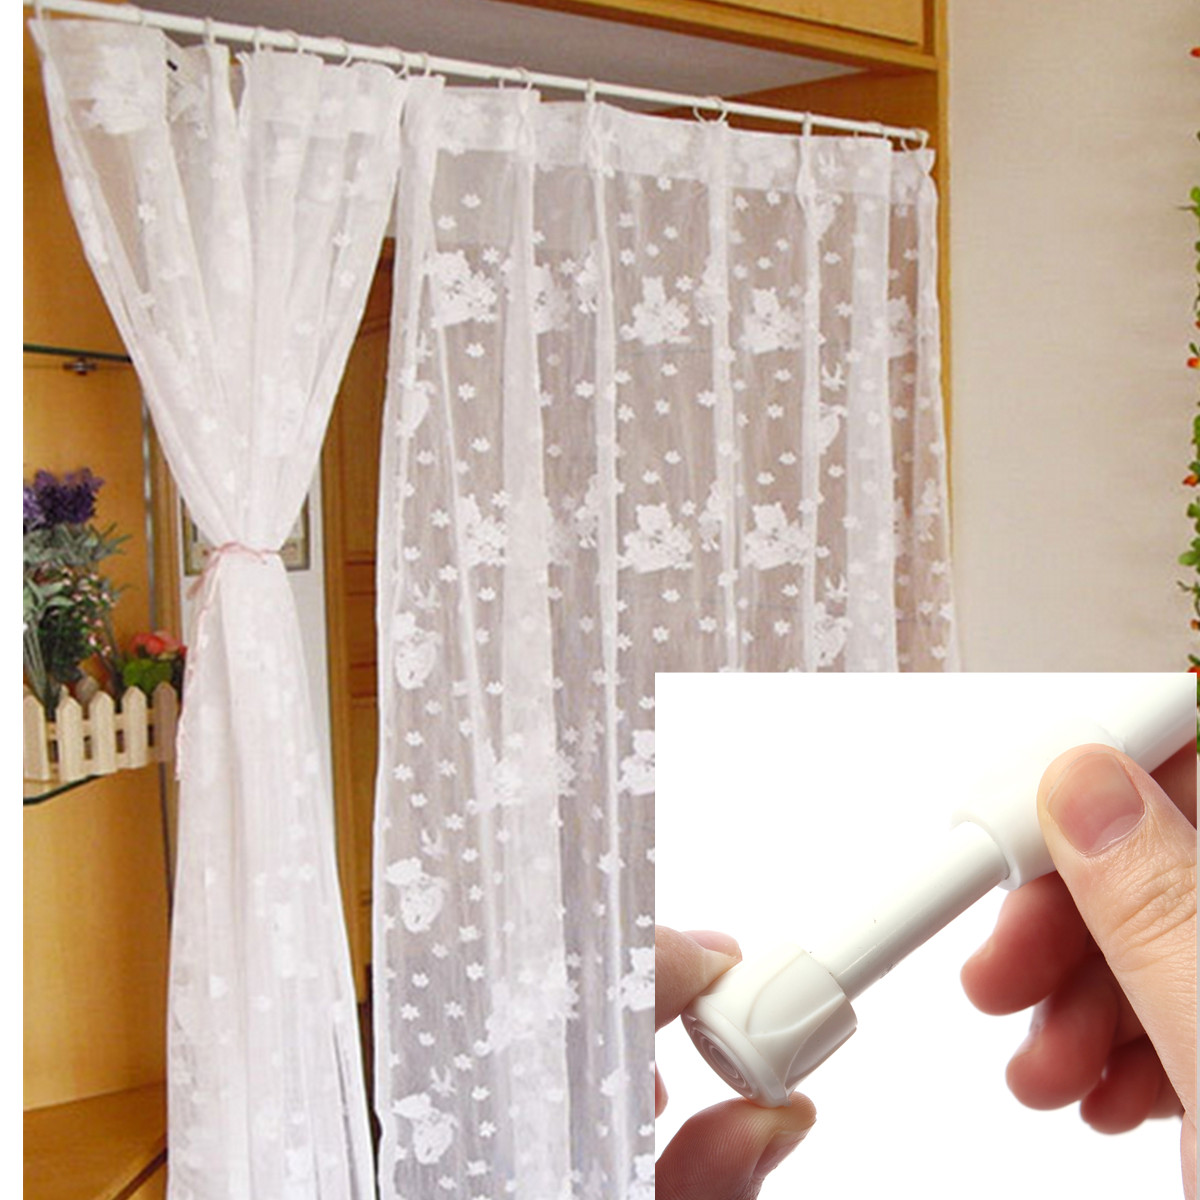 title | Extra Long Shower Curtain Rod